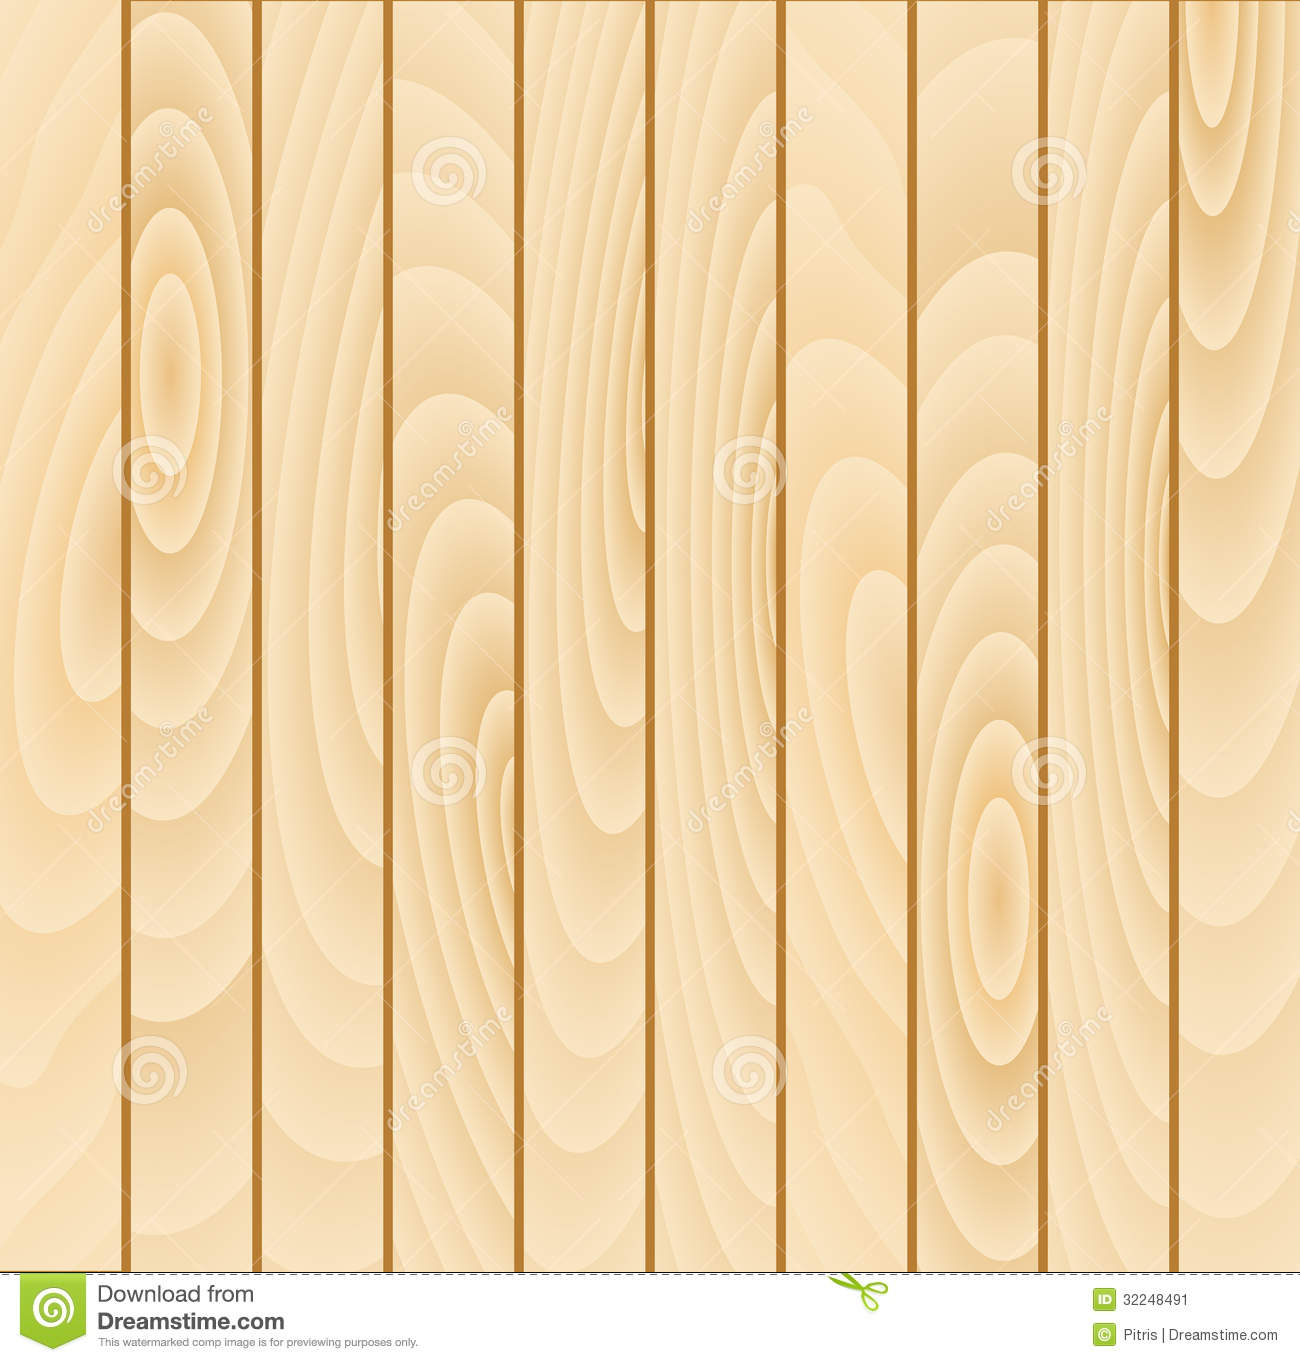 Vector Wood Plank Background Stock Vector - Image: 32248491